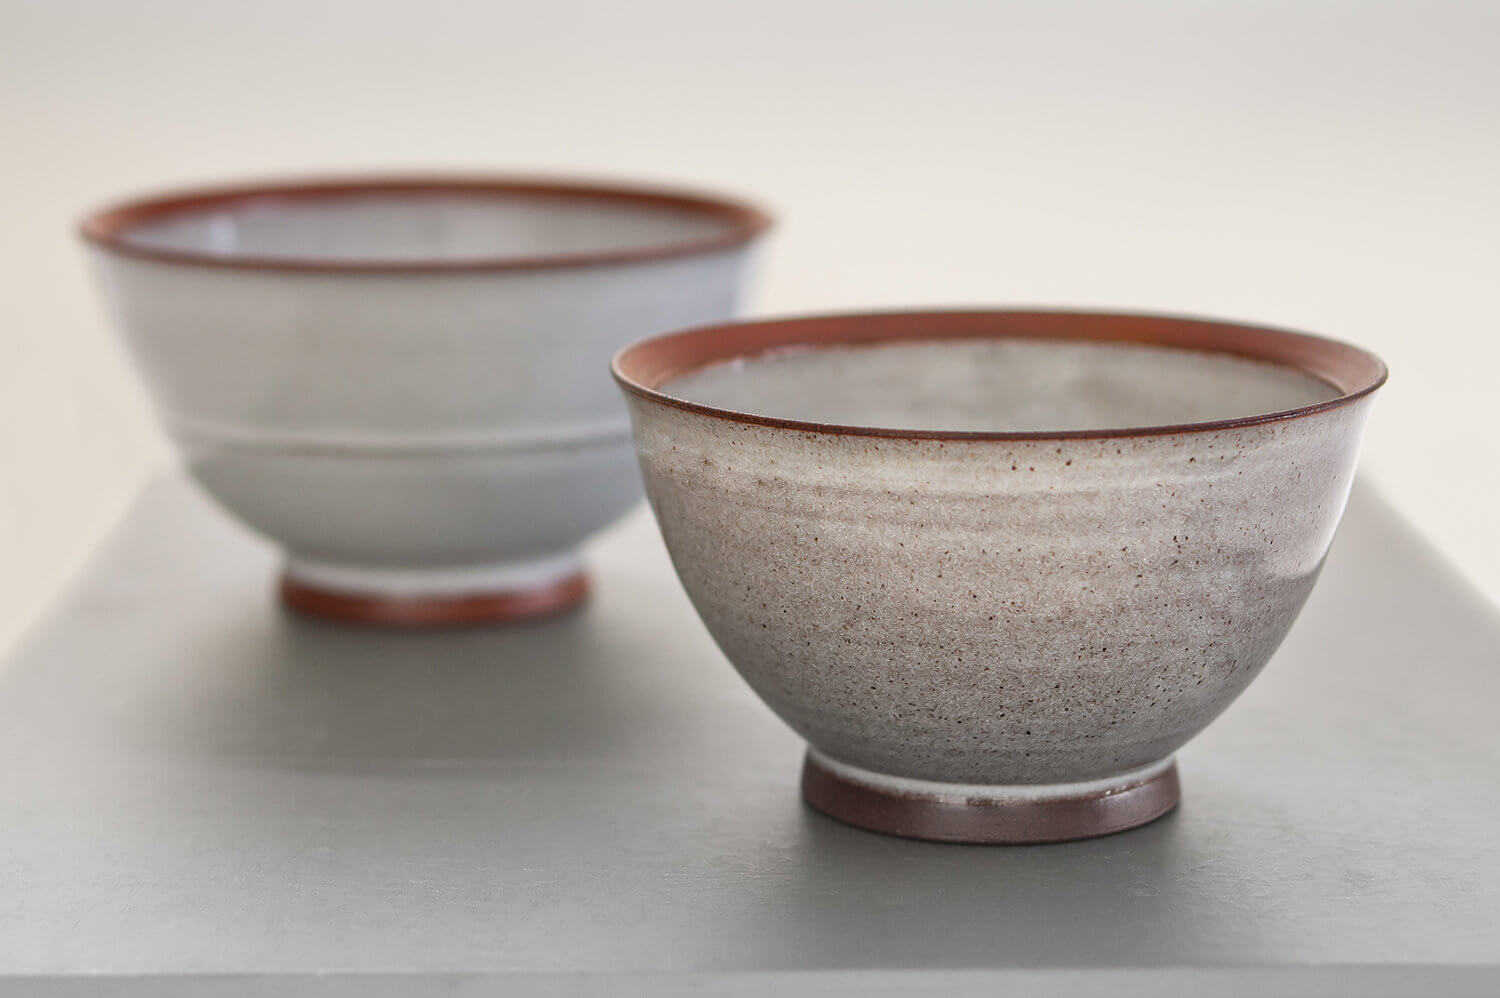 Handmade ceramics bowls photographed for ceramic artist Graham Hudson